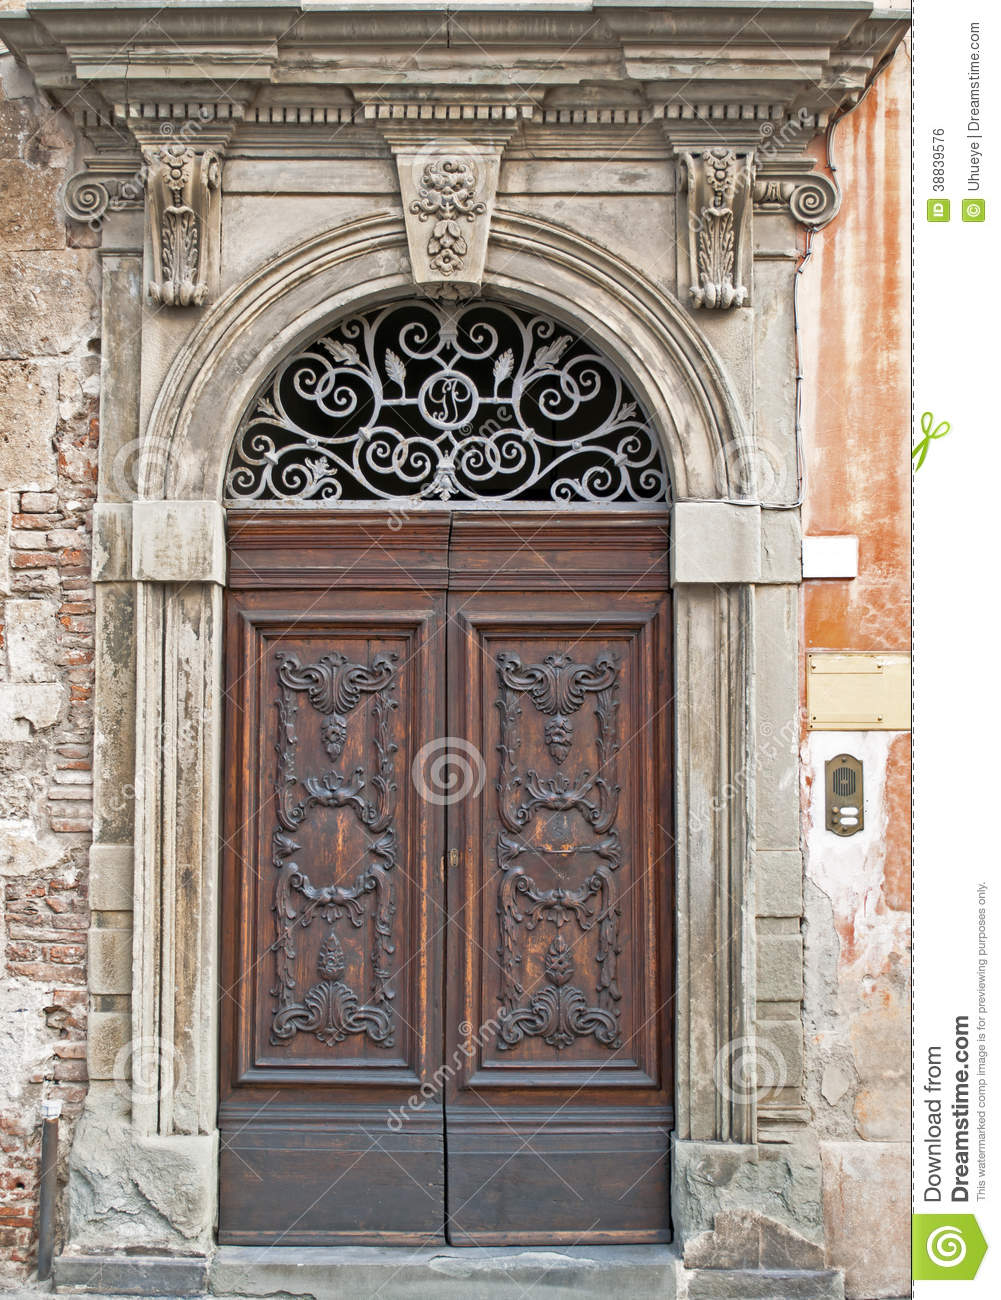 Le Meilleur Very Old Beautiful Door In Italy Stock Photo Image Of Ce Mois Ci